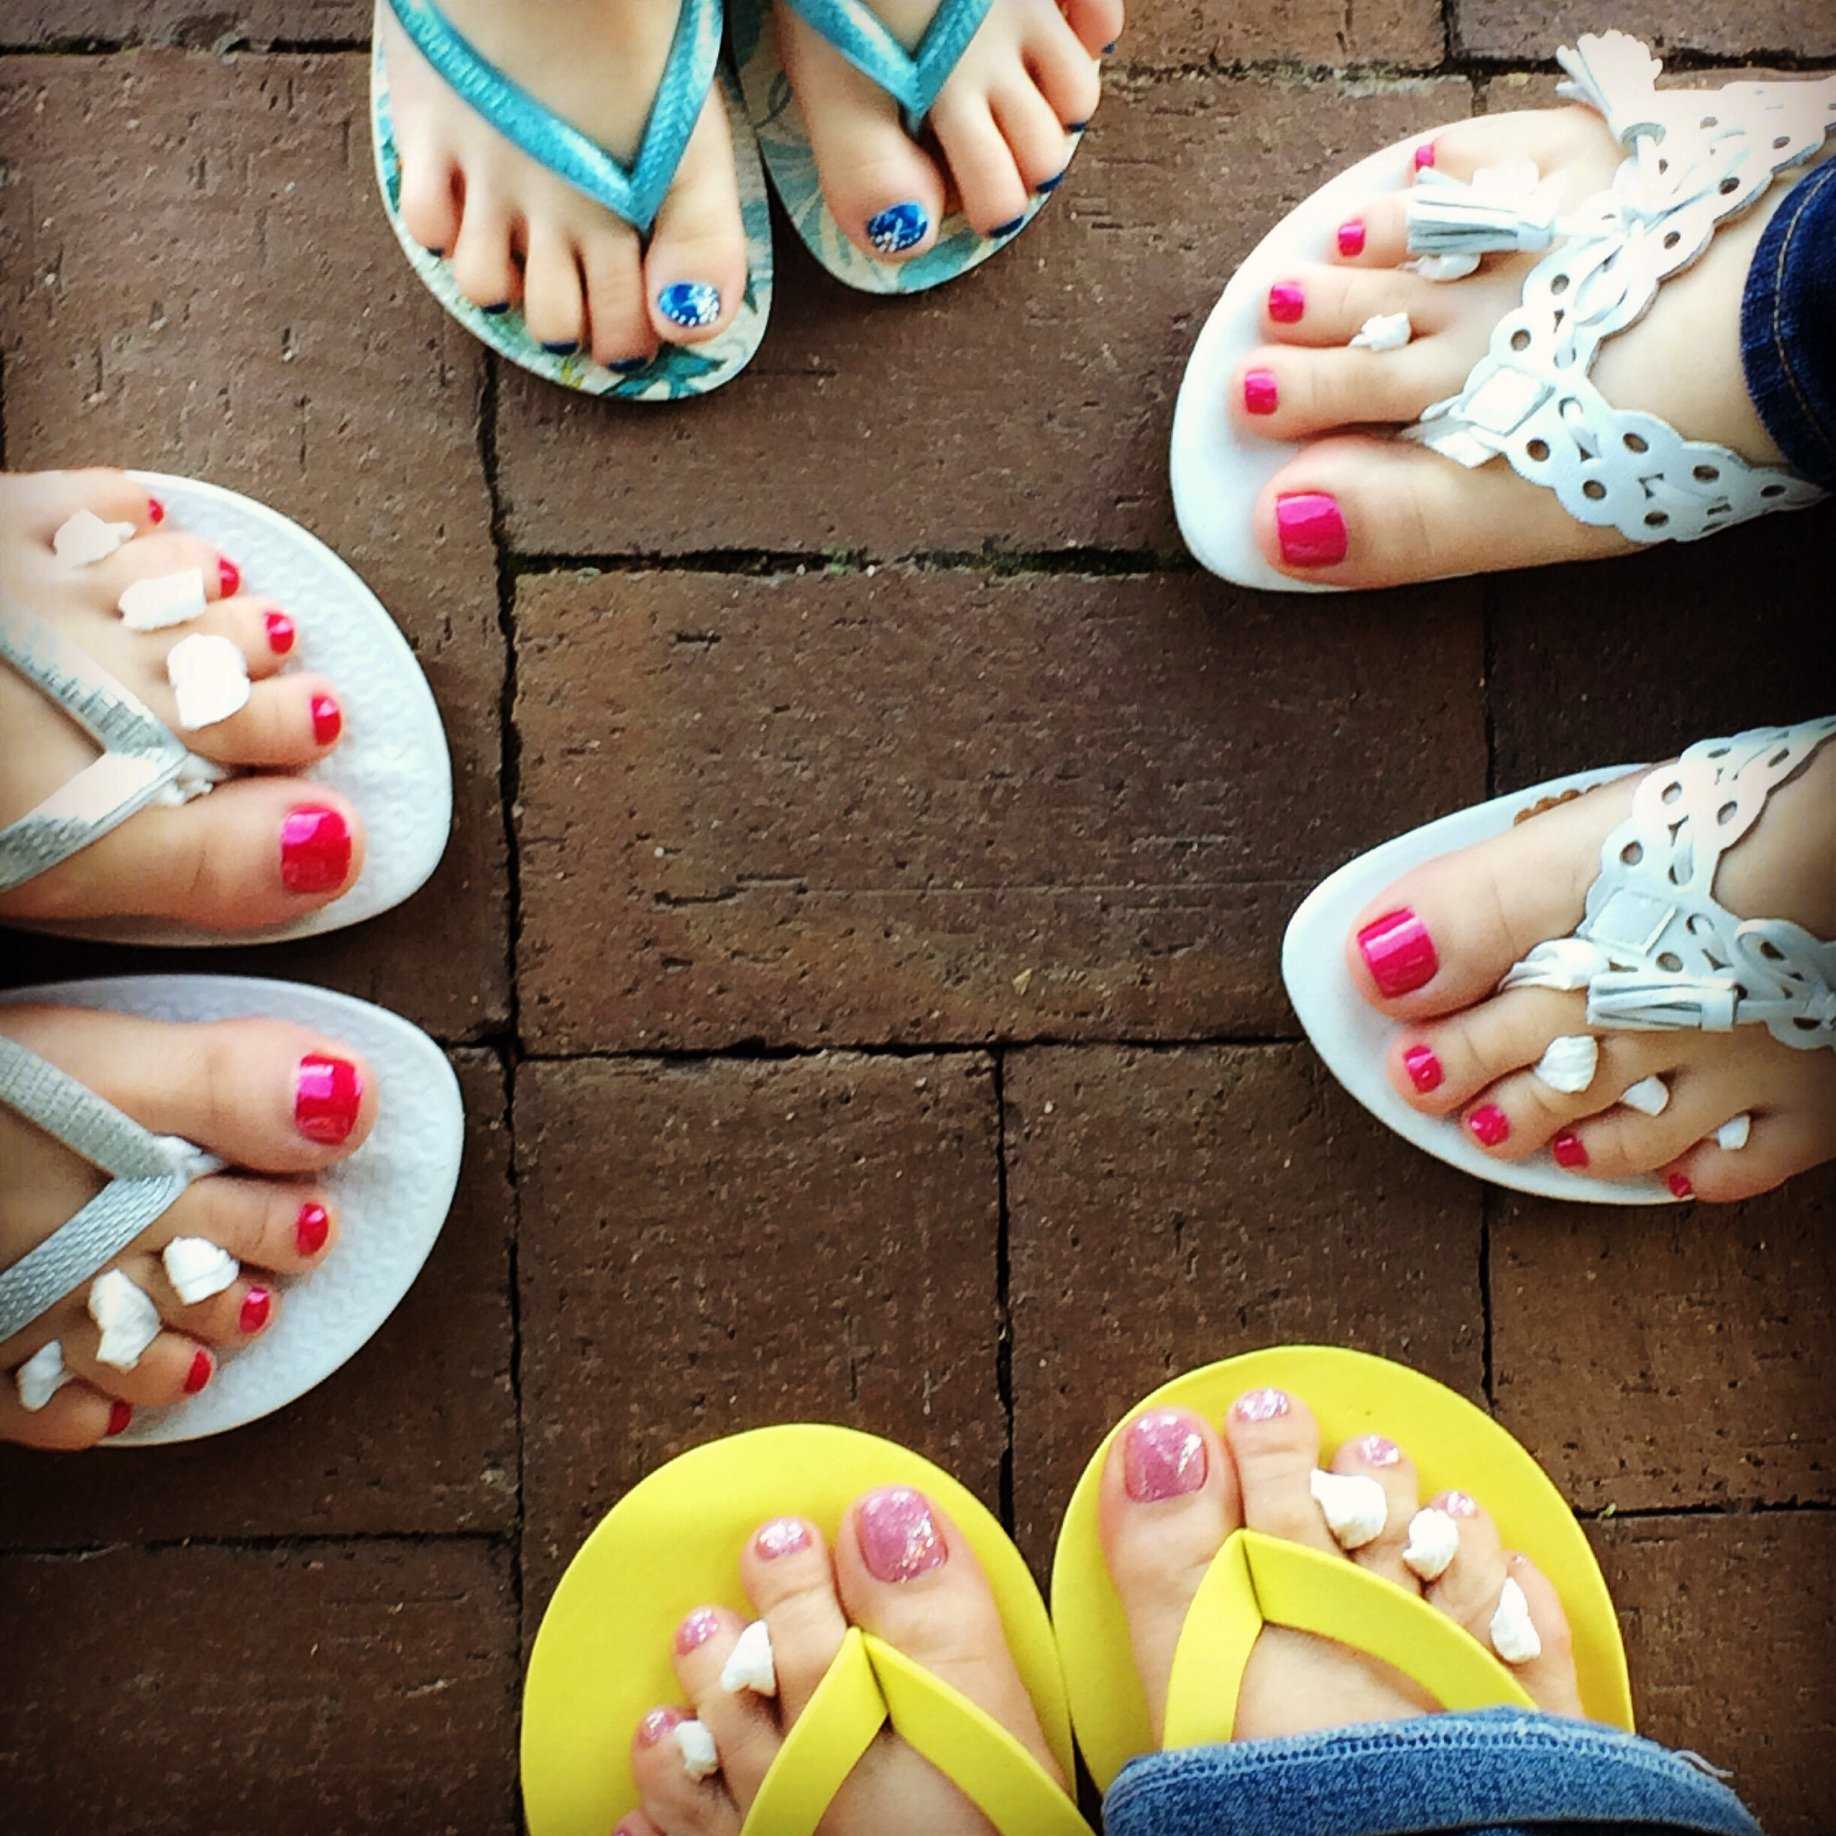 Mobile Manicure and Pedicure Services | Nail Services At Your Location